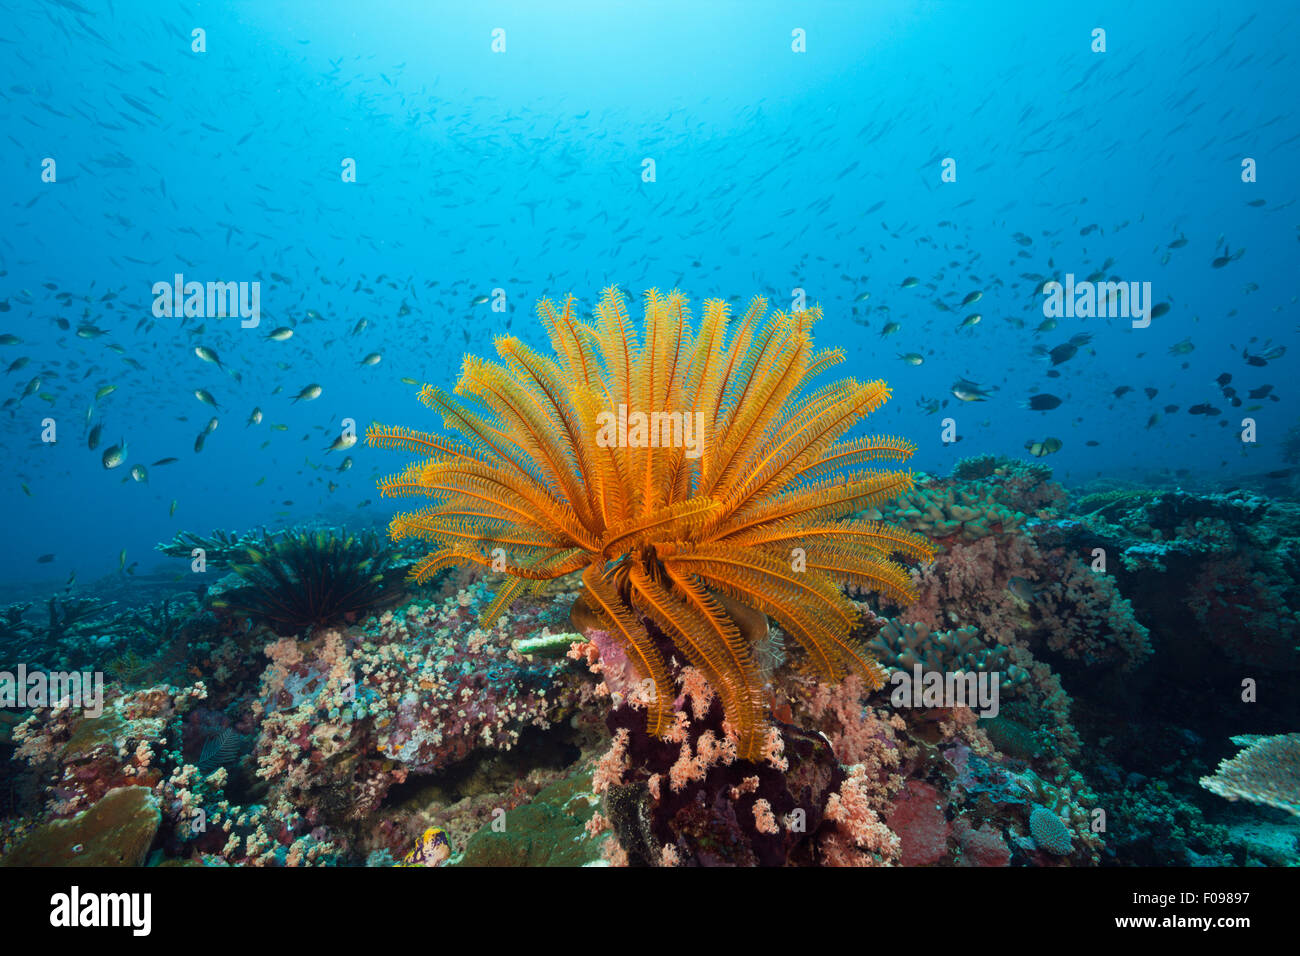 Crinoid in Coral Reef, Florida Islands, Solomon Islands - Stock Image